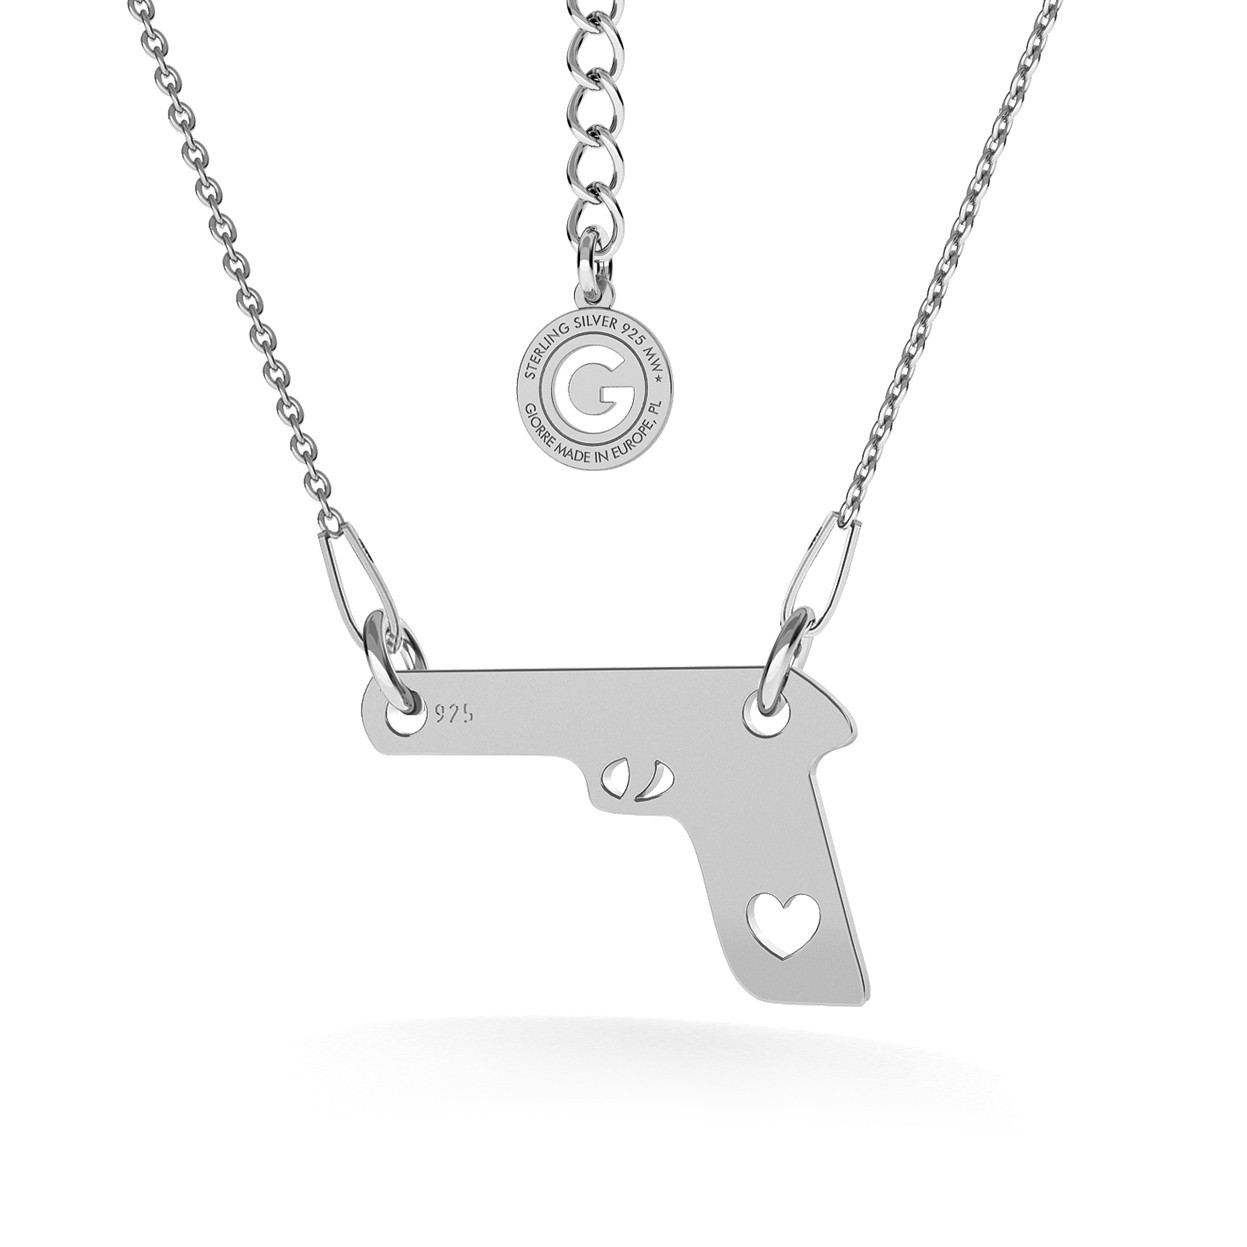 GUN WITH HEART NECKLACE